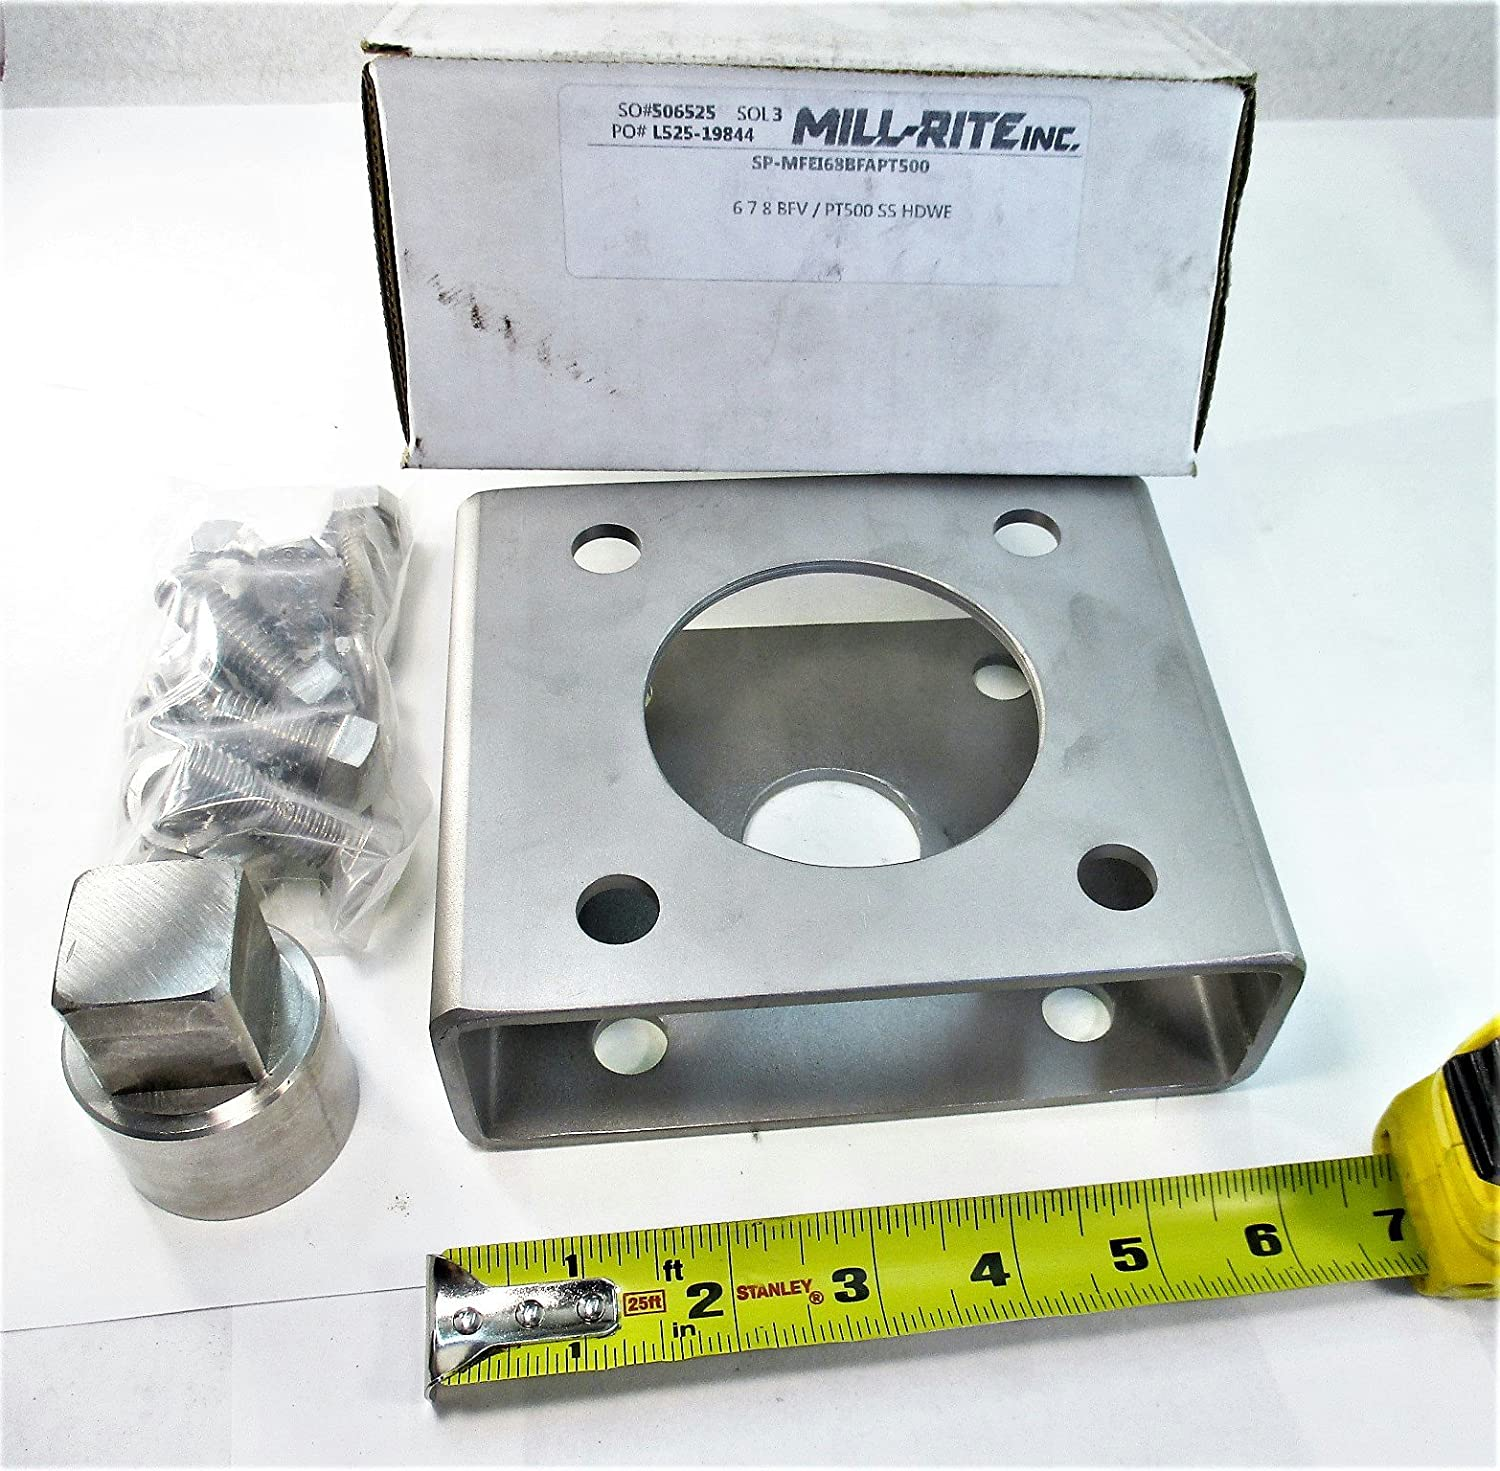 Mill-Rite Valve Positioner Mounting Kit Stainless Steel New SP-MFEI68BFAPT500